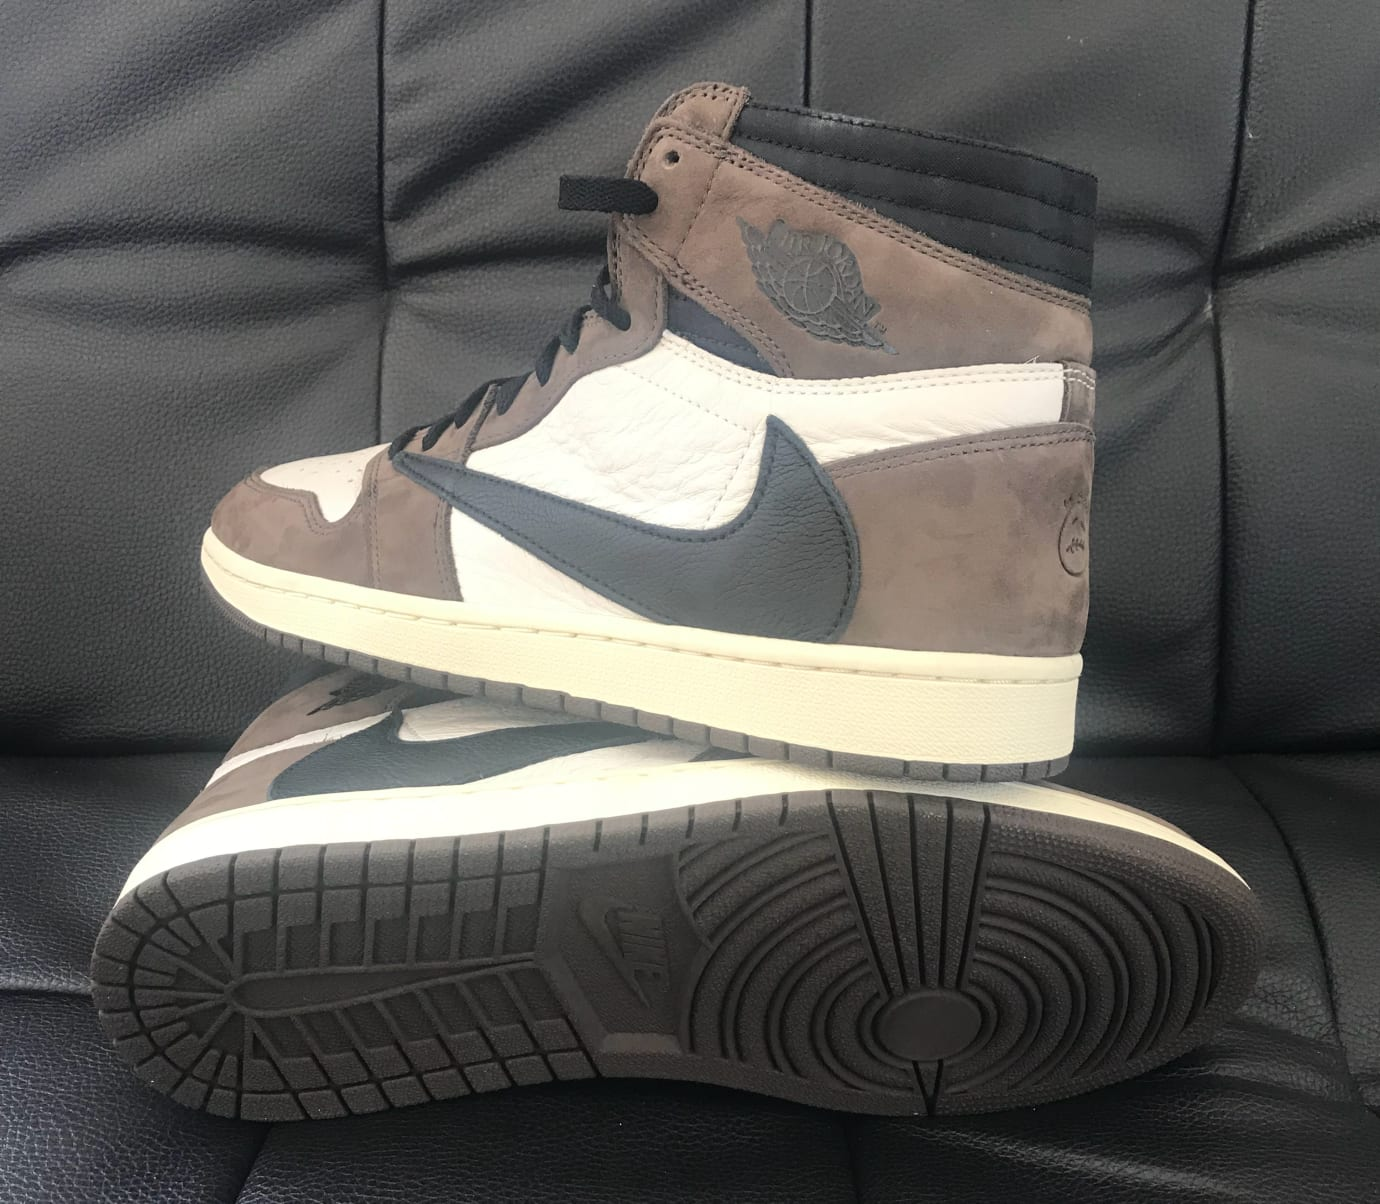 cc0e9dc0bd2c3a Image via Weibo.cn Travis Scott x Air Jordan 1 High OG TS SP CD4487-100  (Lateral and